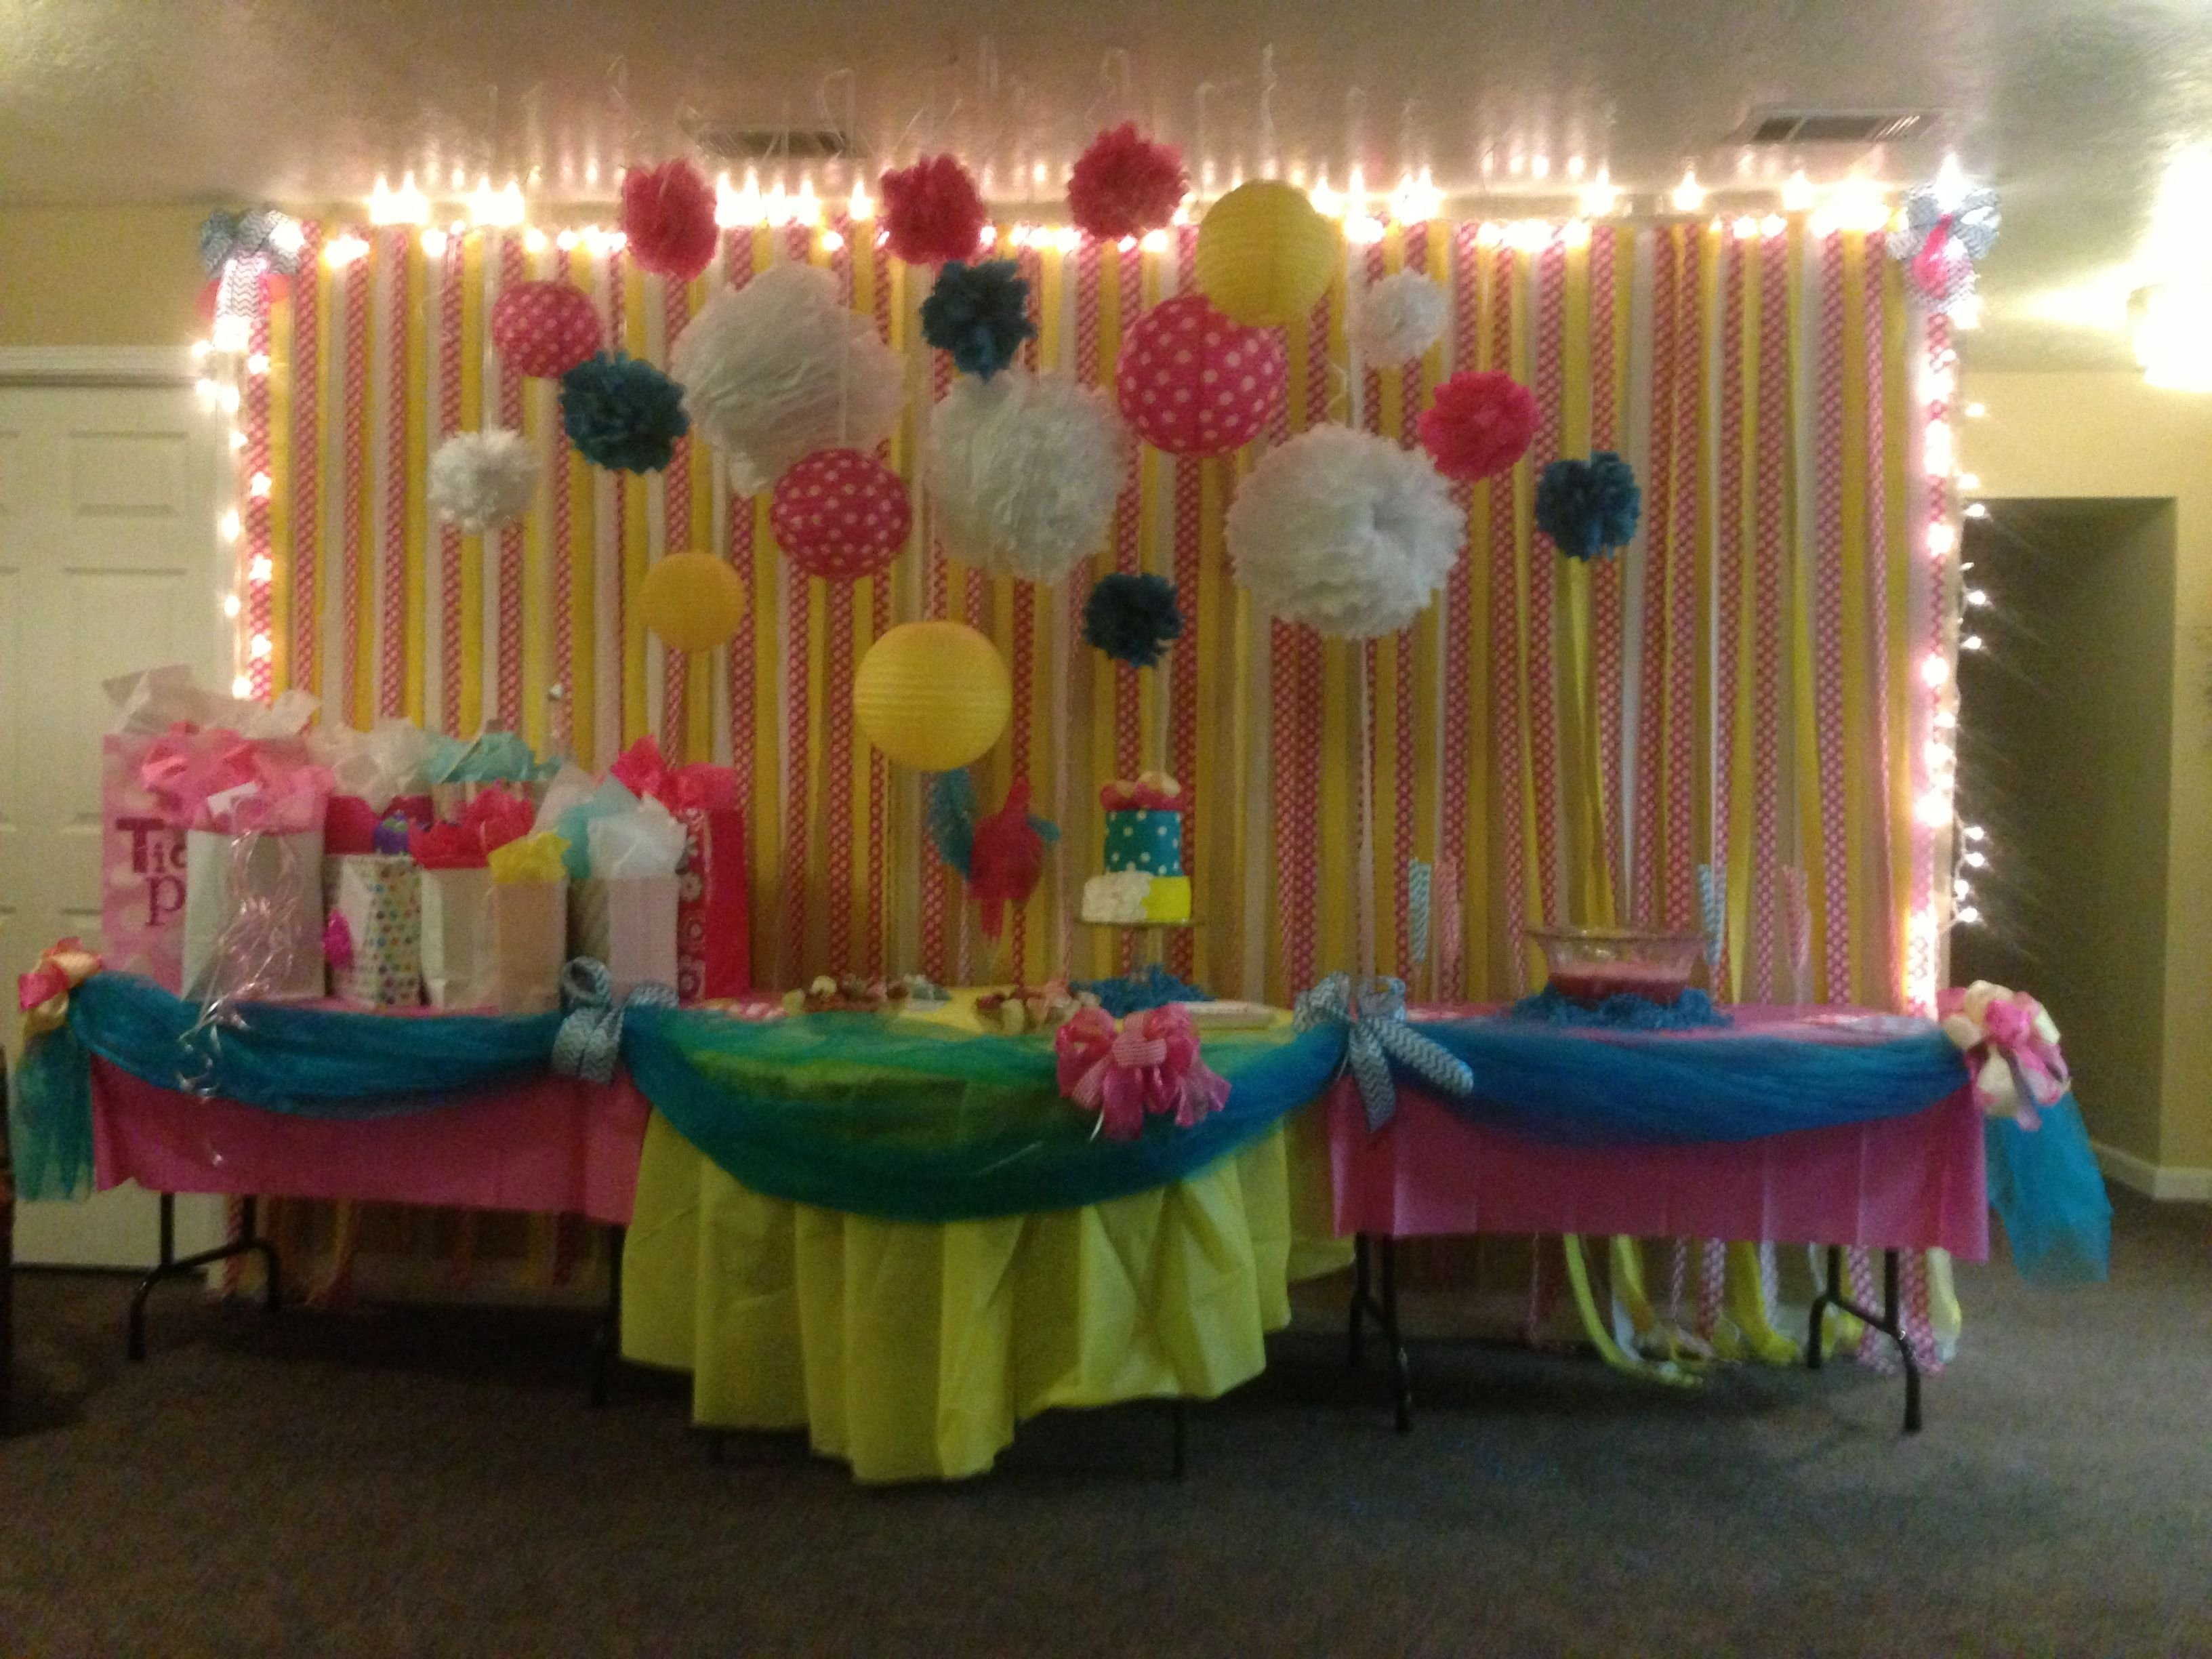 10 Stunning Pink And Yellow Baby Shower Ideas baby shower hot pink yellow and teal baby shower pinterest 2020